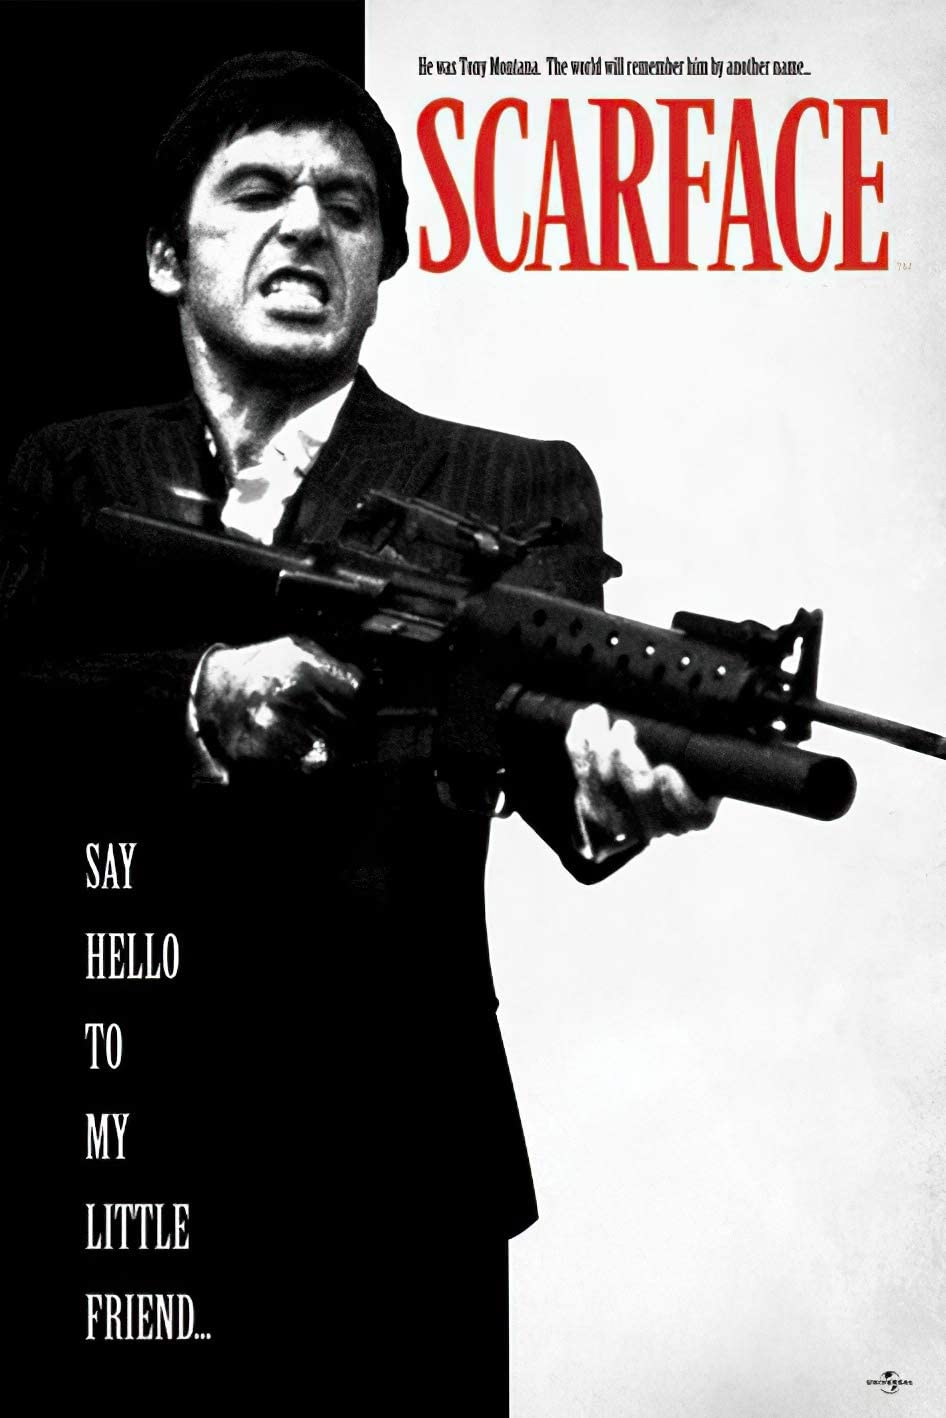 "Scarface - Movie Poster / Print (Tony Montana - Say Hello To My Little Friend) (Size: 24"" x 36""): Amazon.ca: Home & Kitchen"